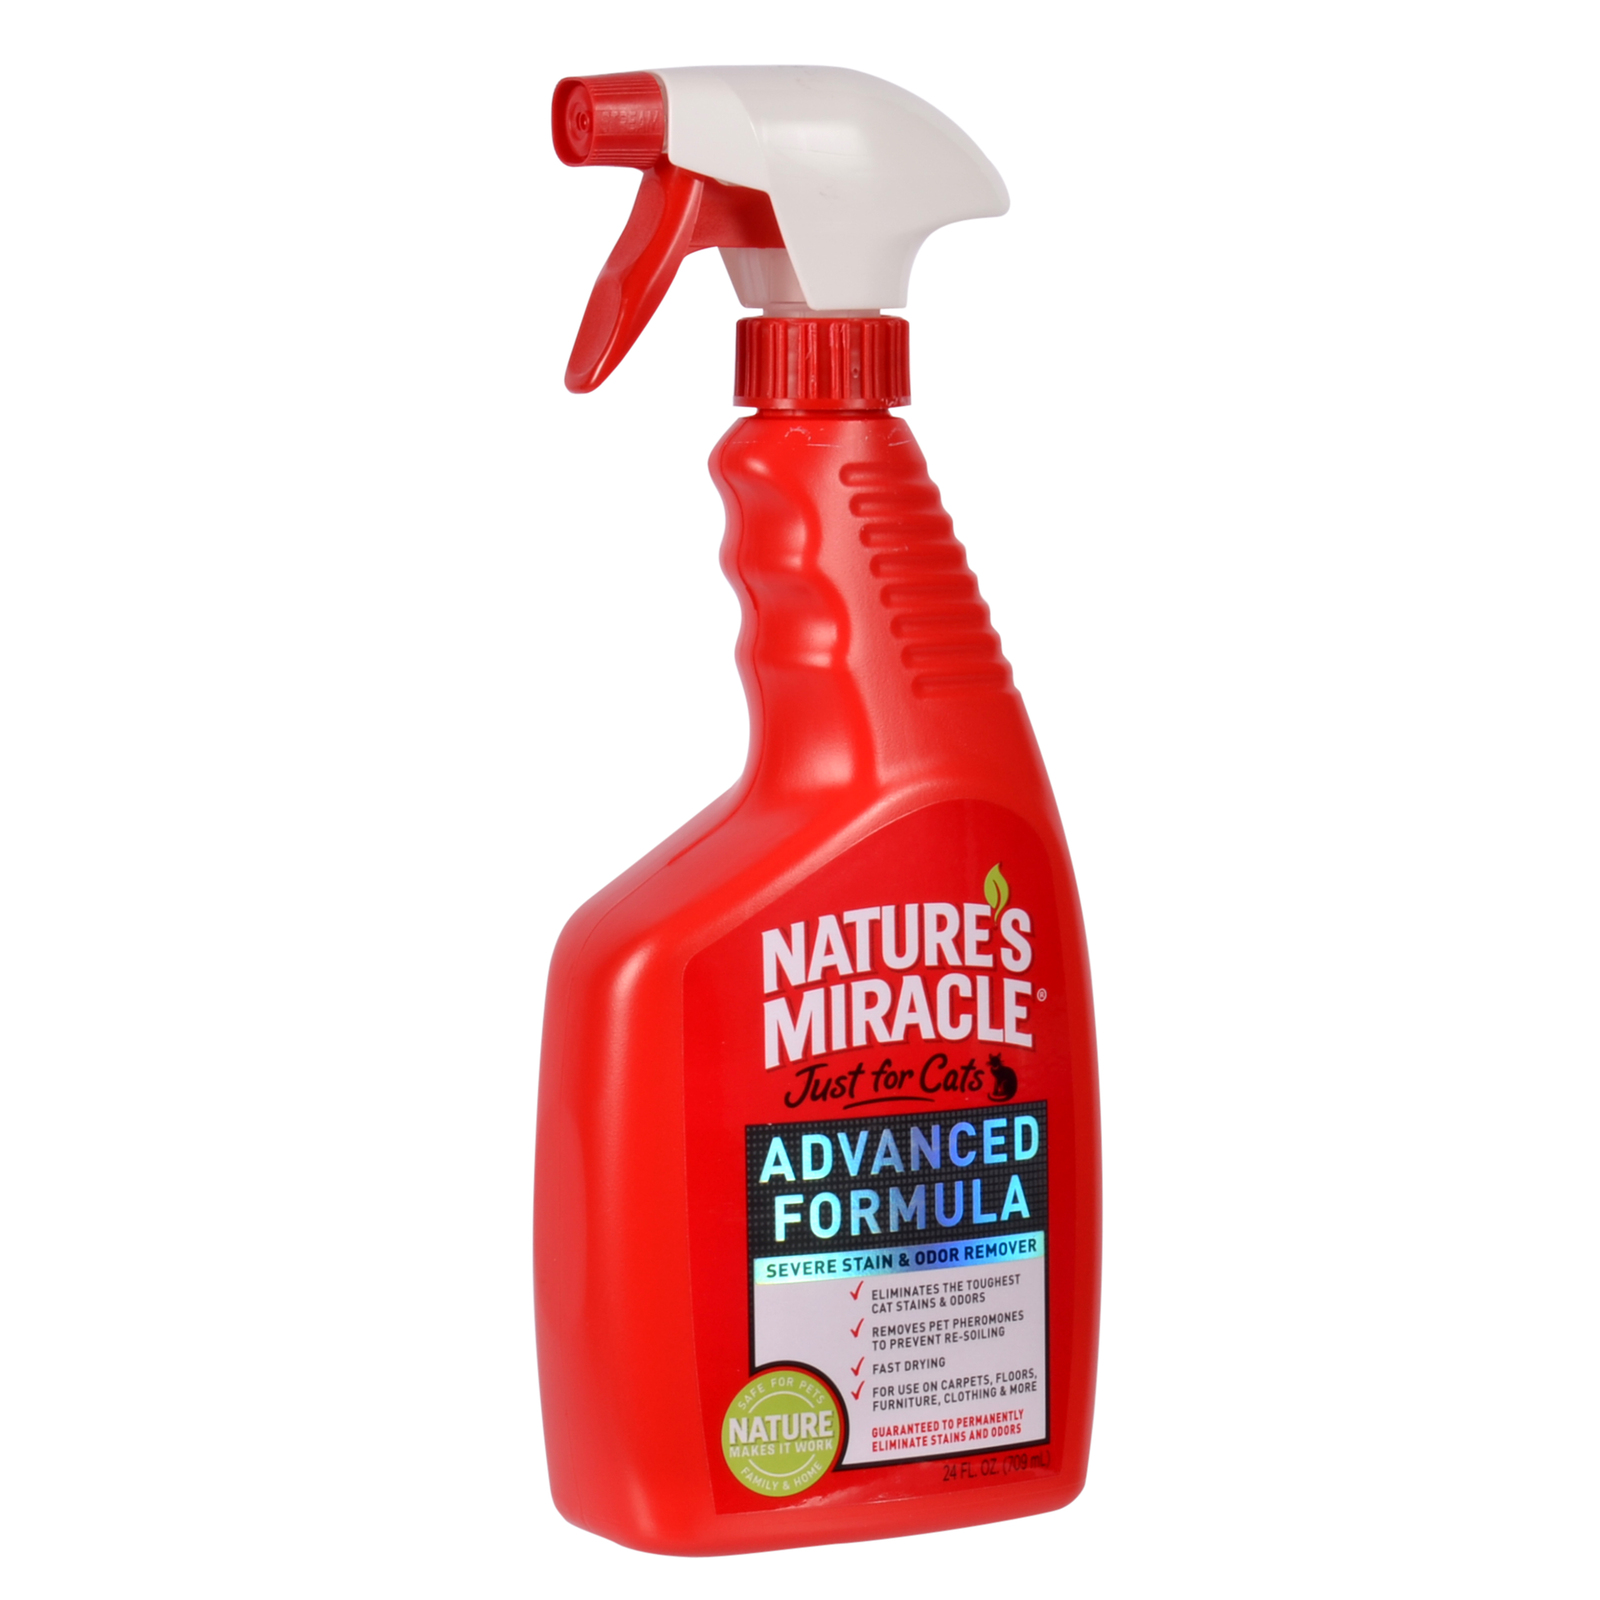 Nature's Miracle: Just For Cats Advanced Stain & Odor Remover image